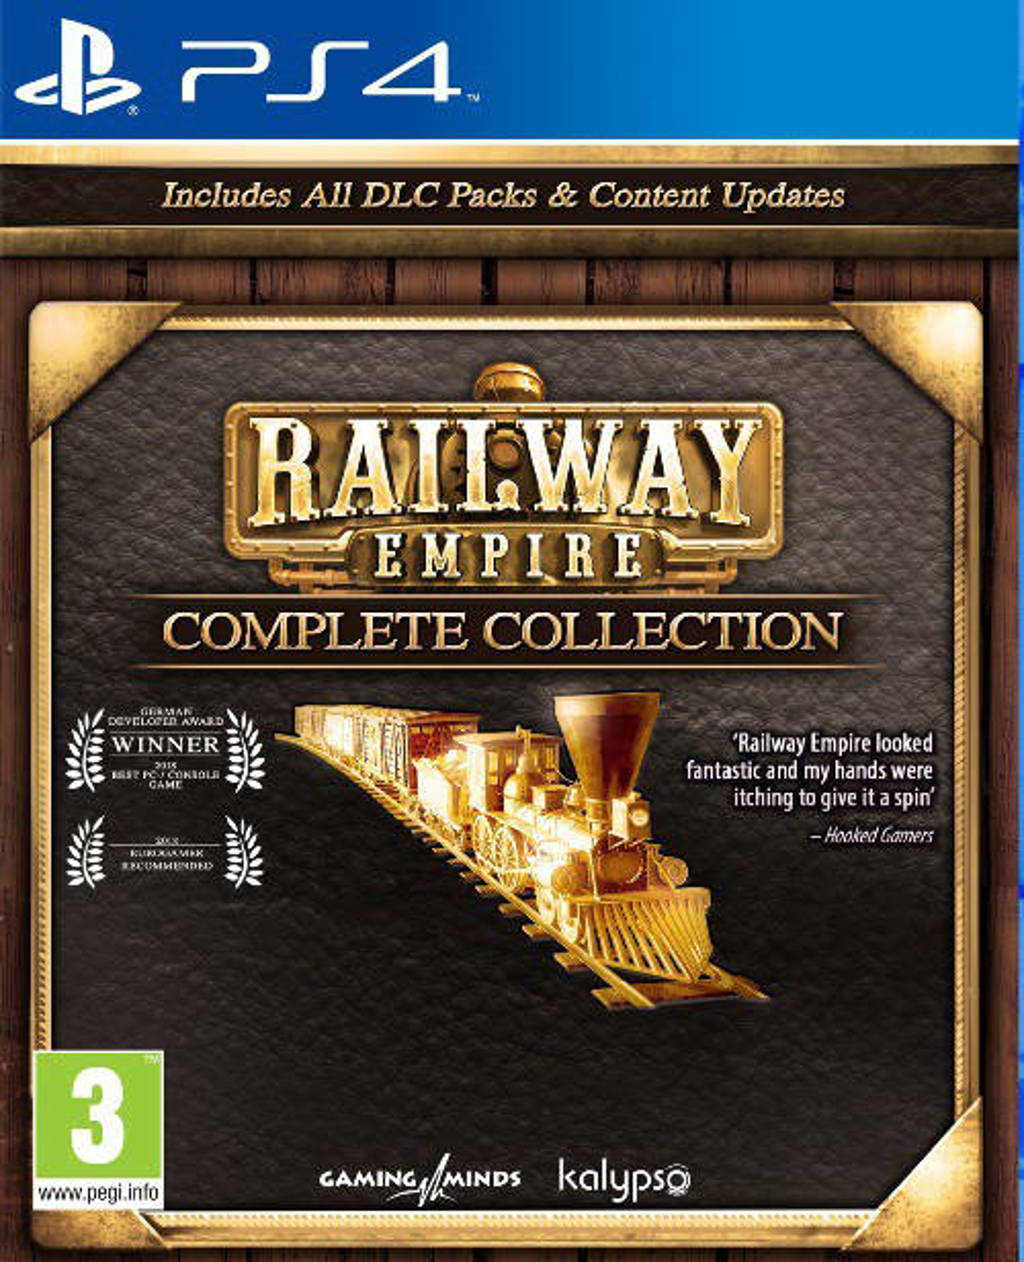 Railway (Empire complete collection) (PlayStation 4)